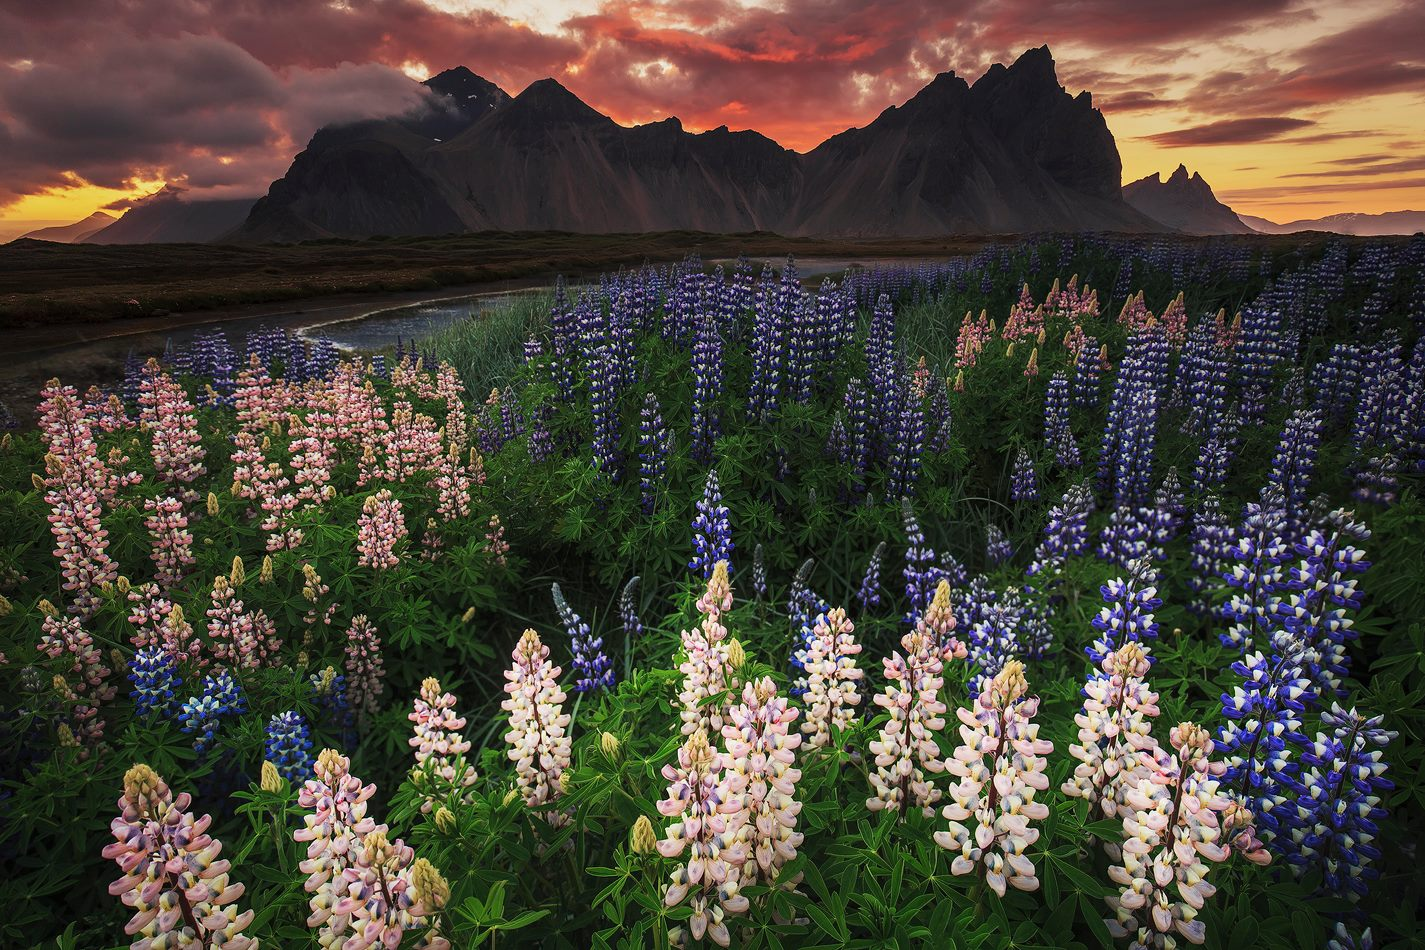 The beautiful Lupines of summer provide a perfect foreground for this wonderful sunset behind the dramatic peaks of Vestrahorn mountain.